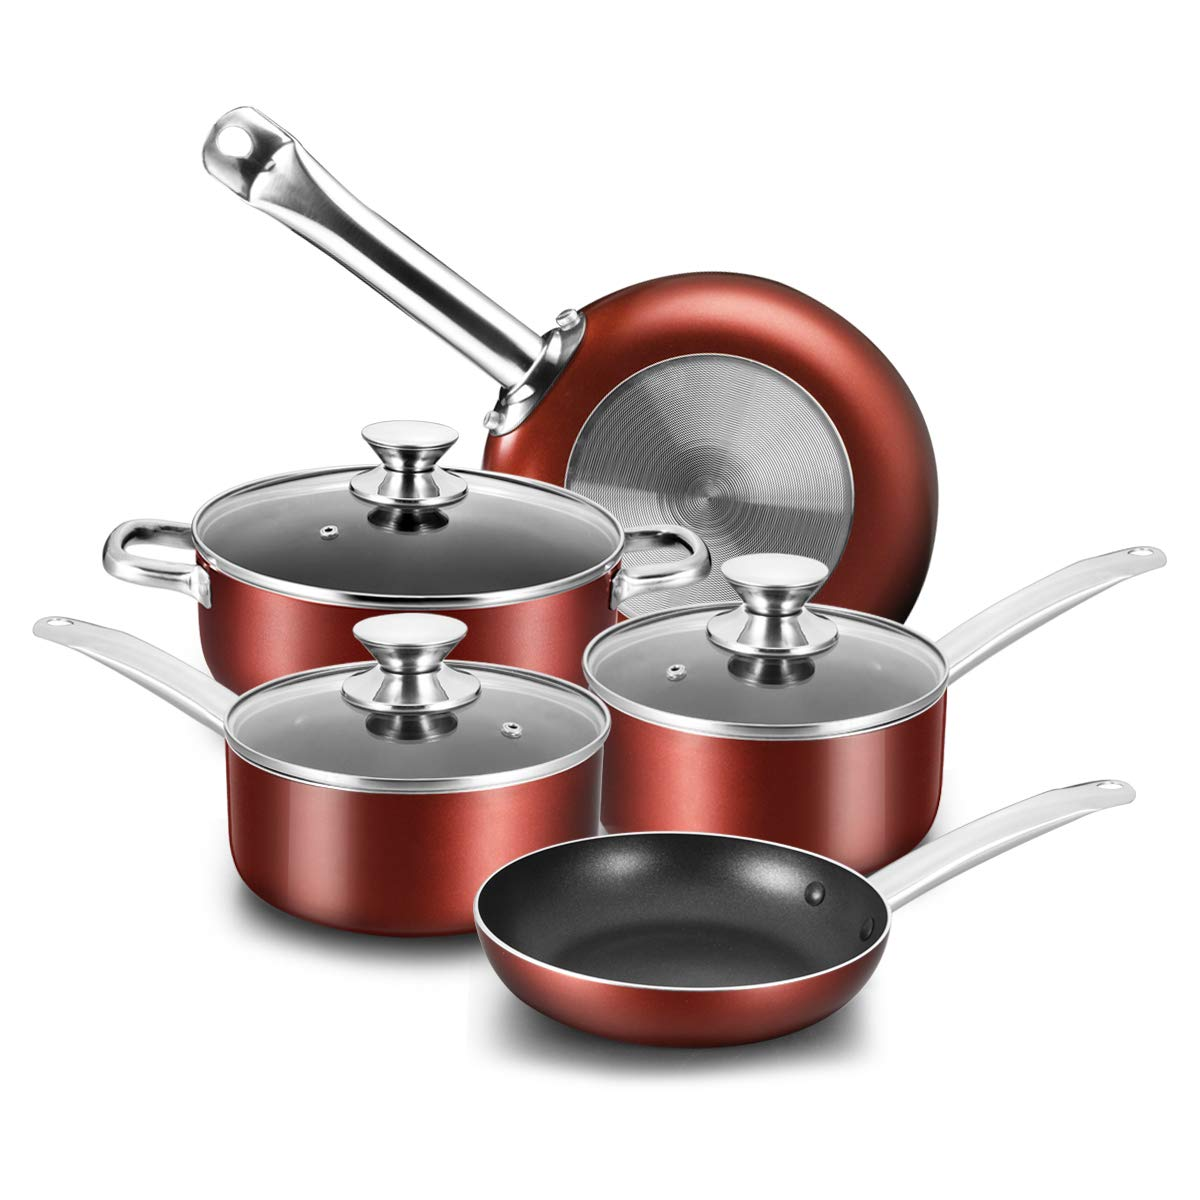 COOKER KING Nonstick Pots and Pans Set, 8 Piece Non-Stick Cookware Set Saucepans and Dutch oven with Glass Lids, Oven Safe, Dishwasher Safe, Glitter Dark Red